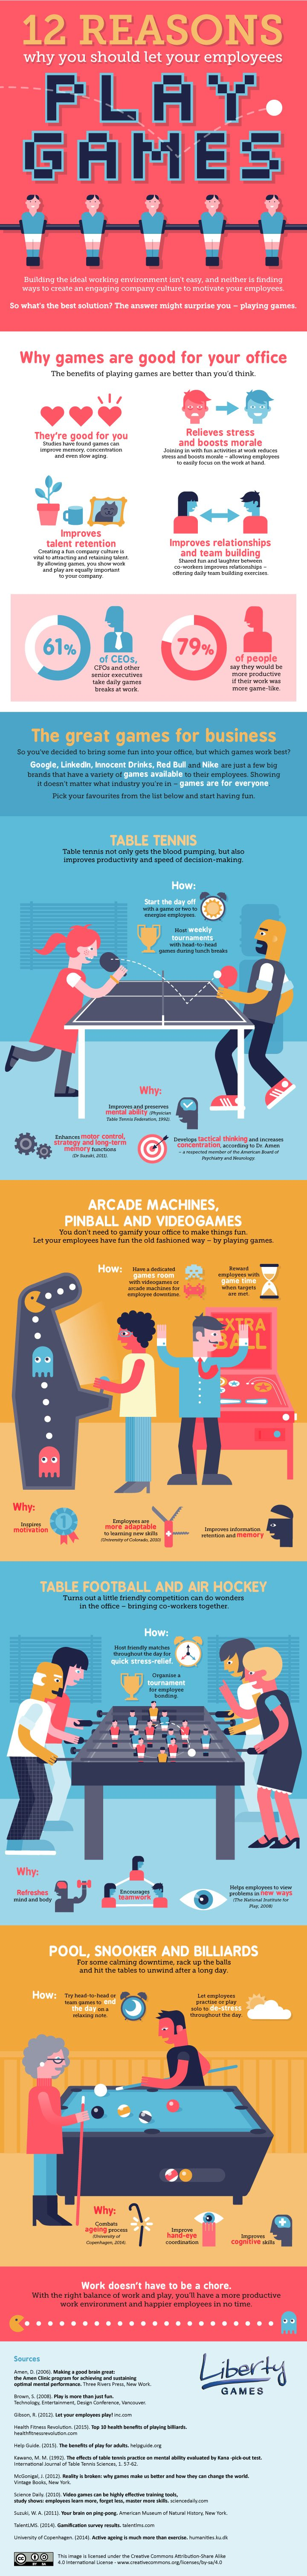 INFOGRAPHIC: 12 Reasons You Should Let Your Employees Play Games